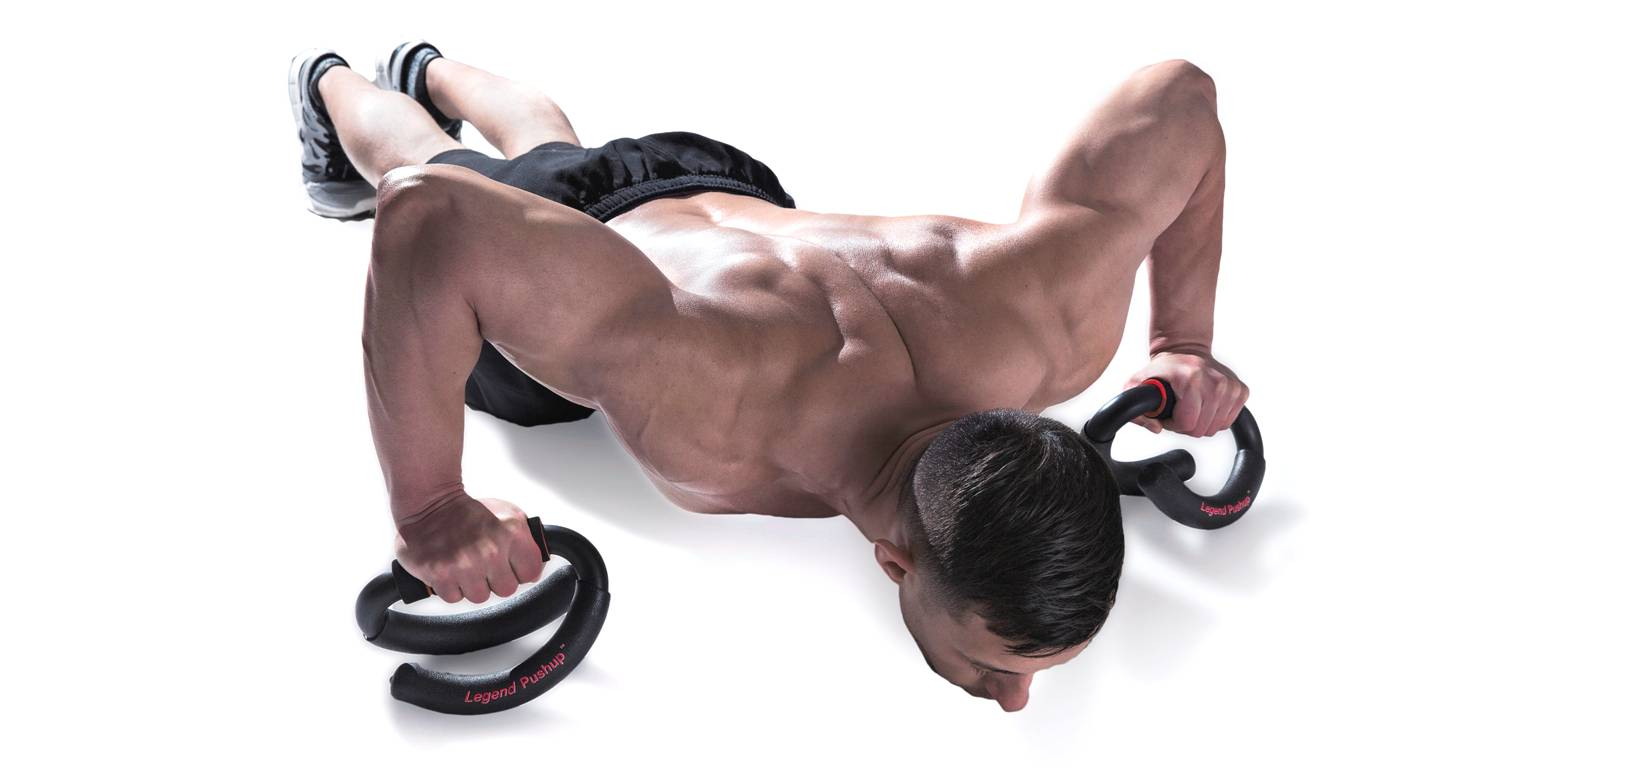 LEGEND PUSHUP ANGLE IMAGE